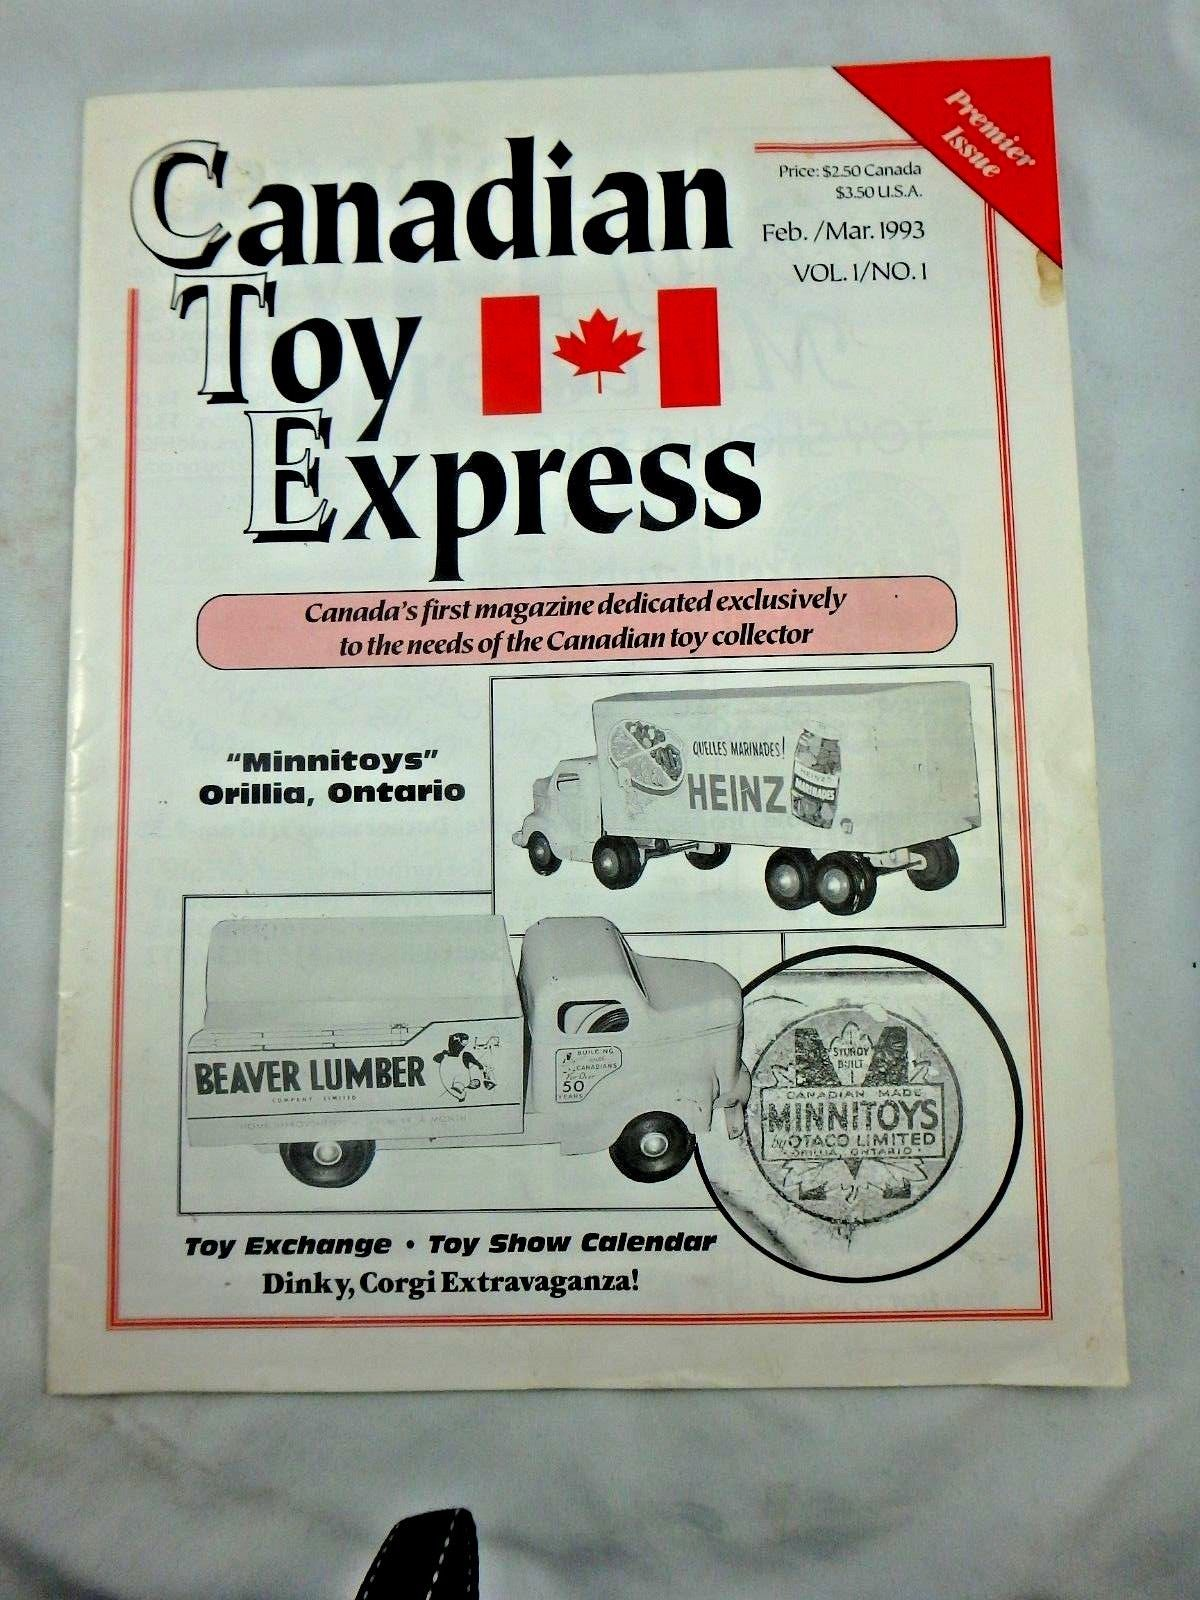 1993 Canadian Toy Express Magazine Vol 1 No 1 Minnitoy Article Ebay Toy Express Expressions Canadian